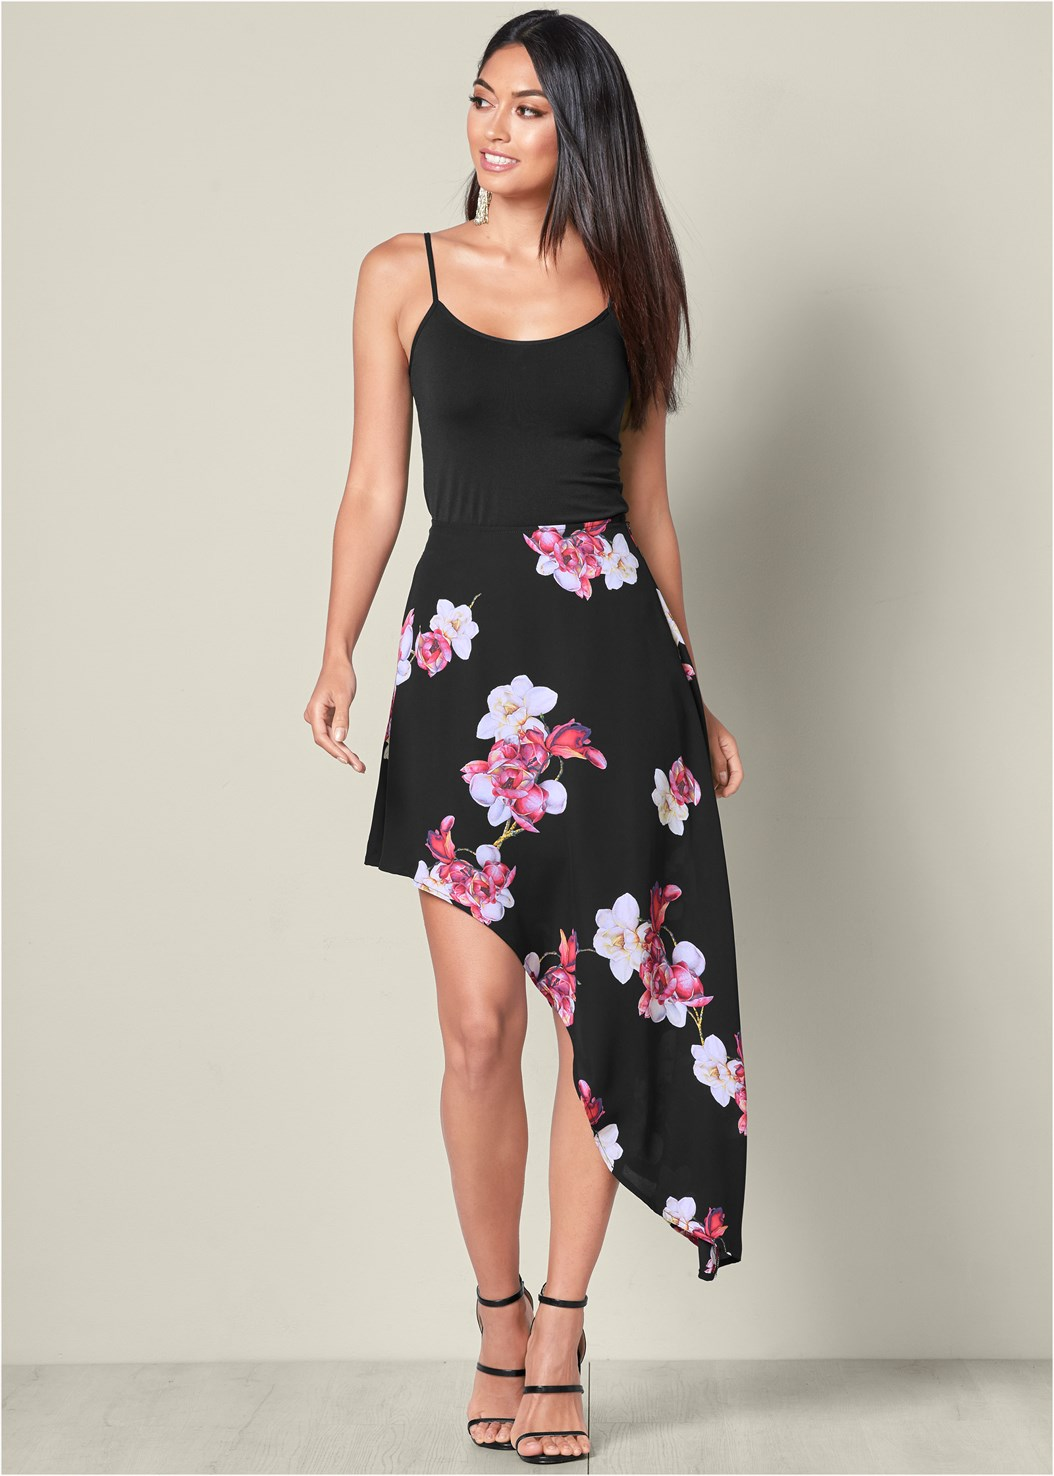 Printed Skirt,Basic Cami Two Pack,High Heel Strappy Sandals